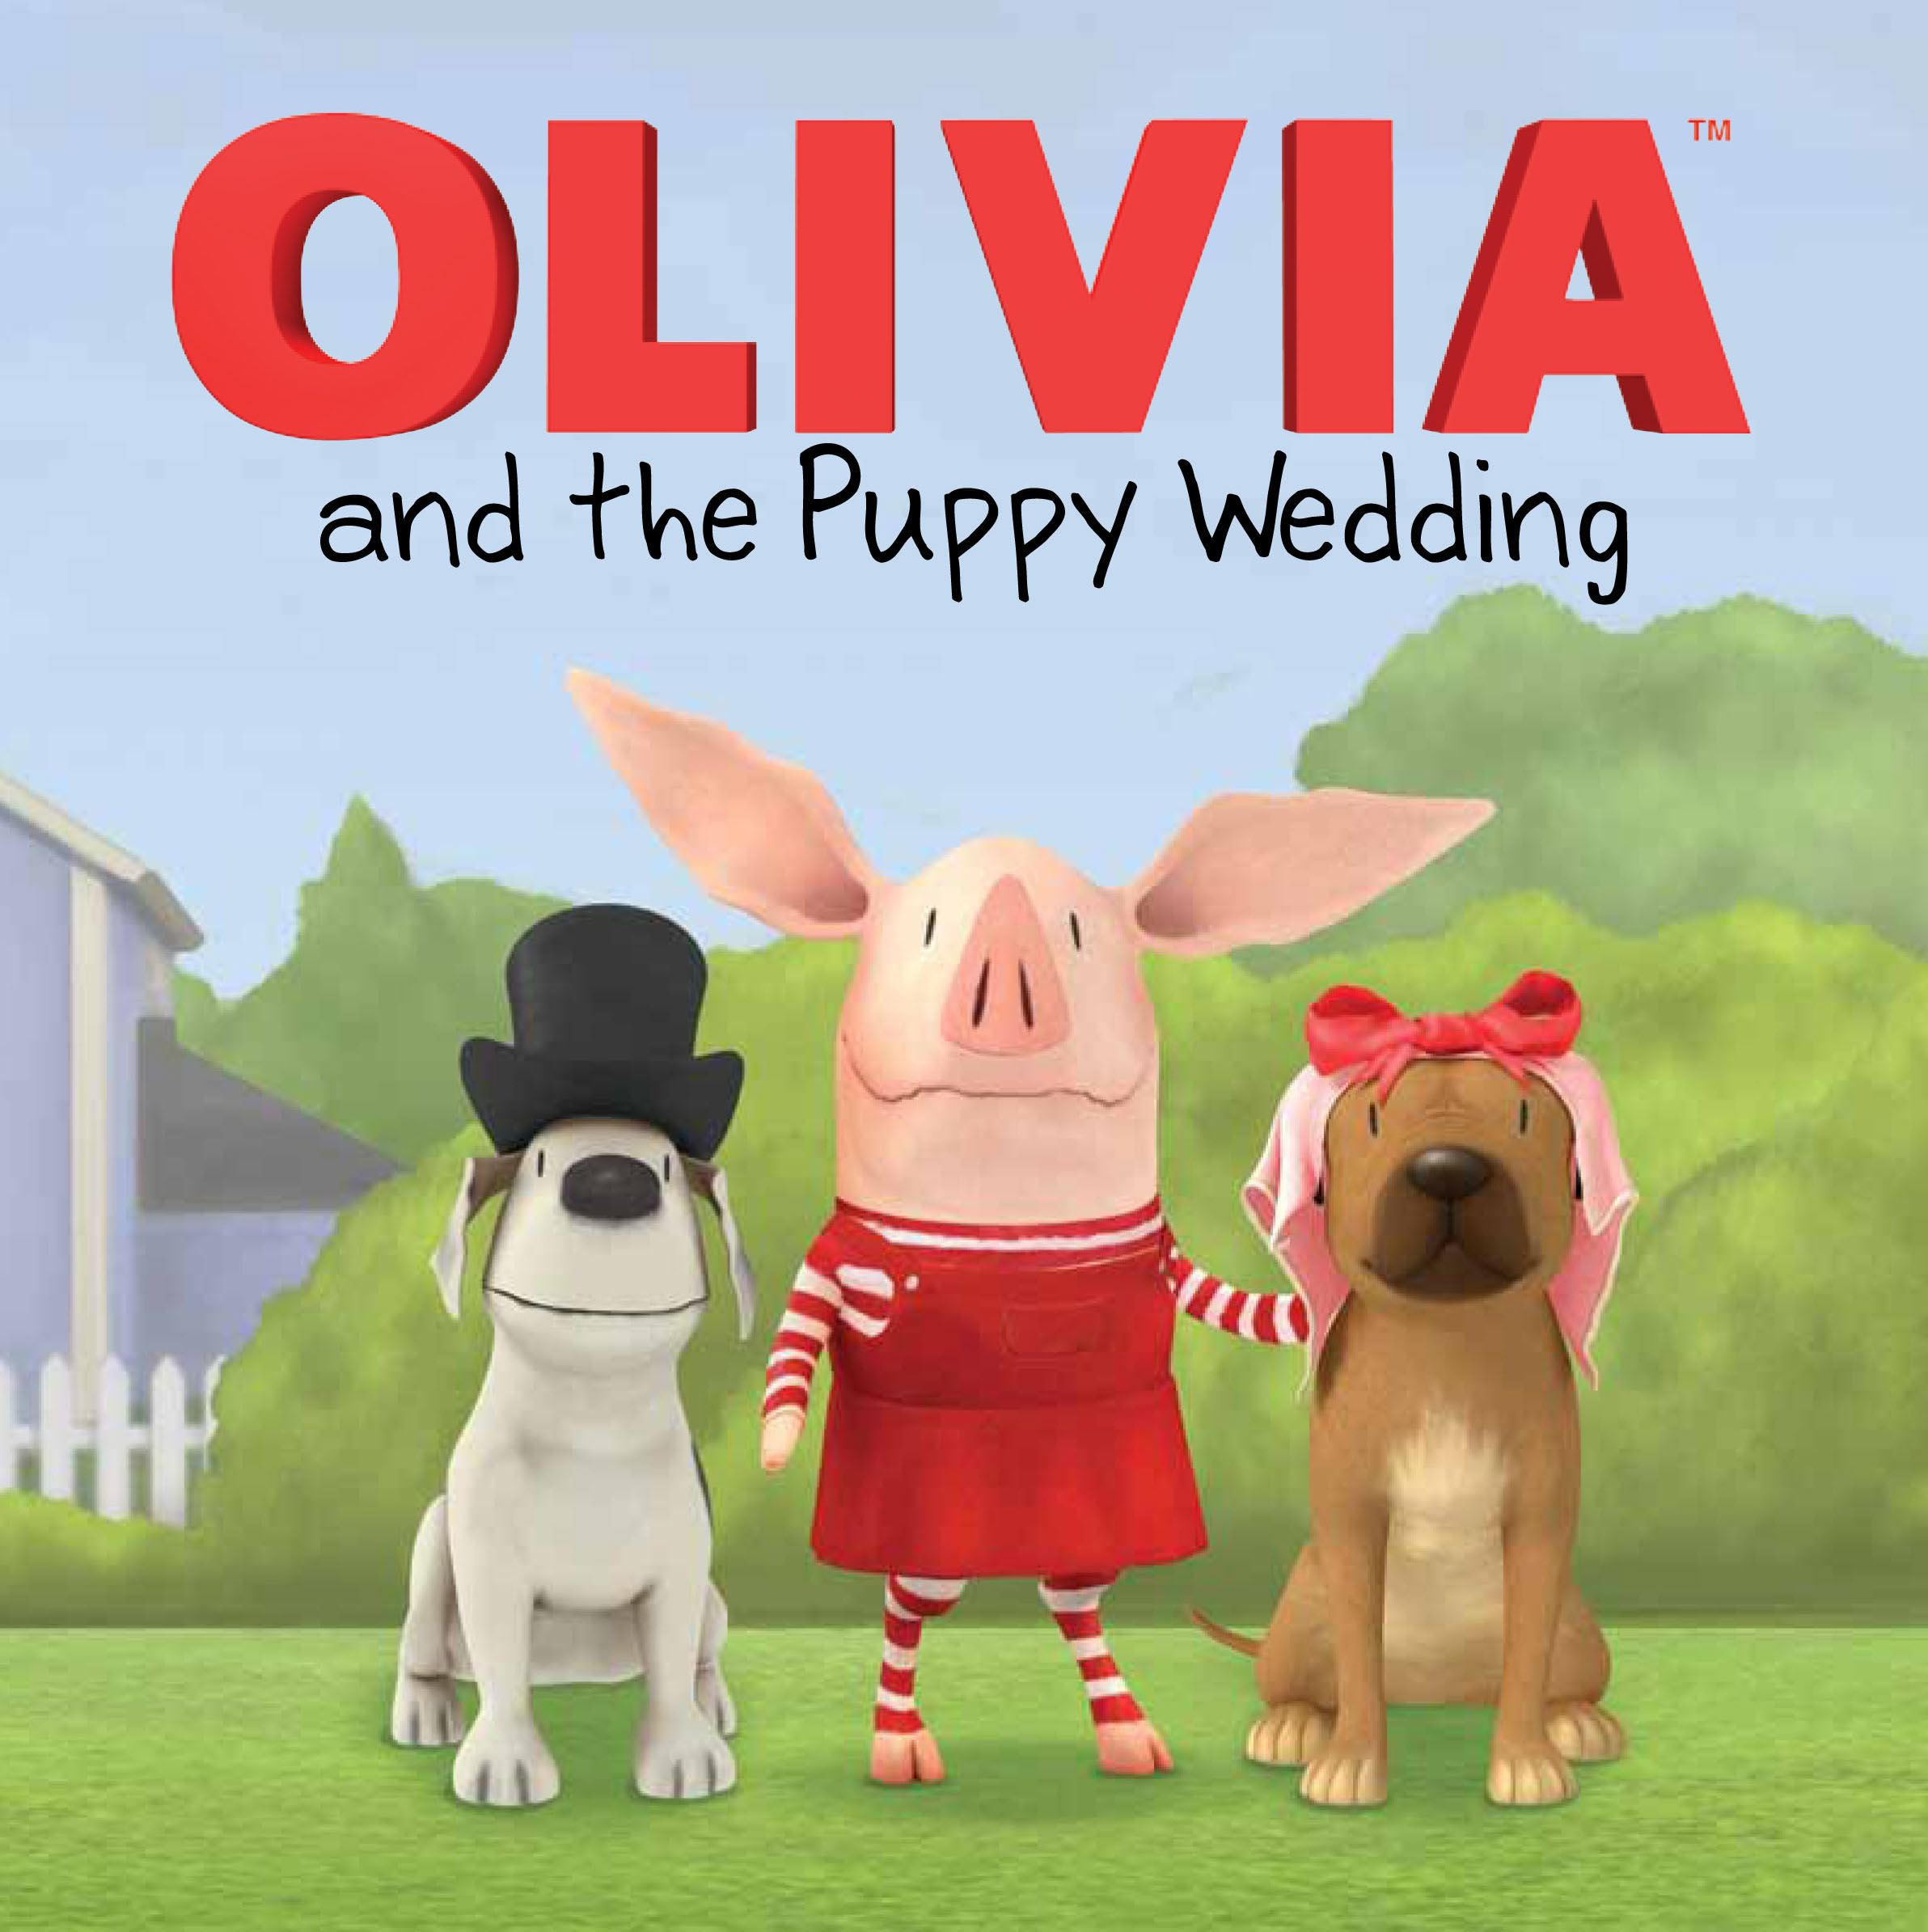 Olivia-and-the-puppy-wedding-9781442453159_hr